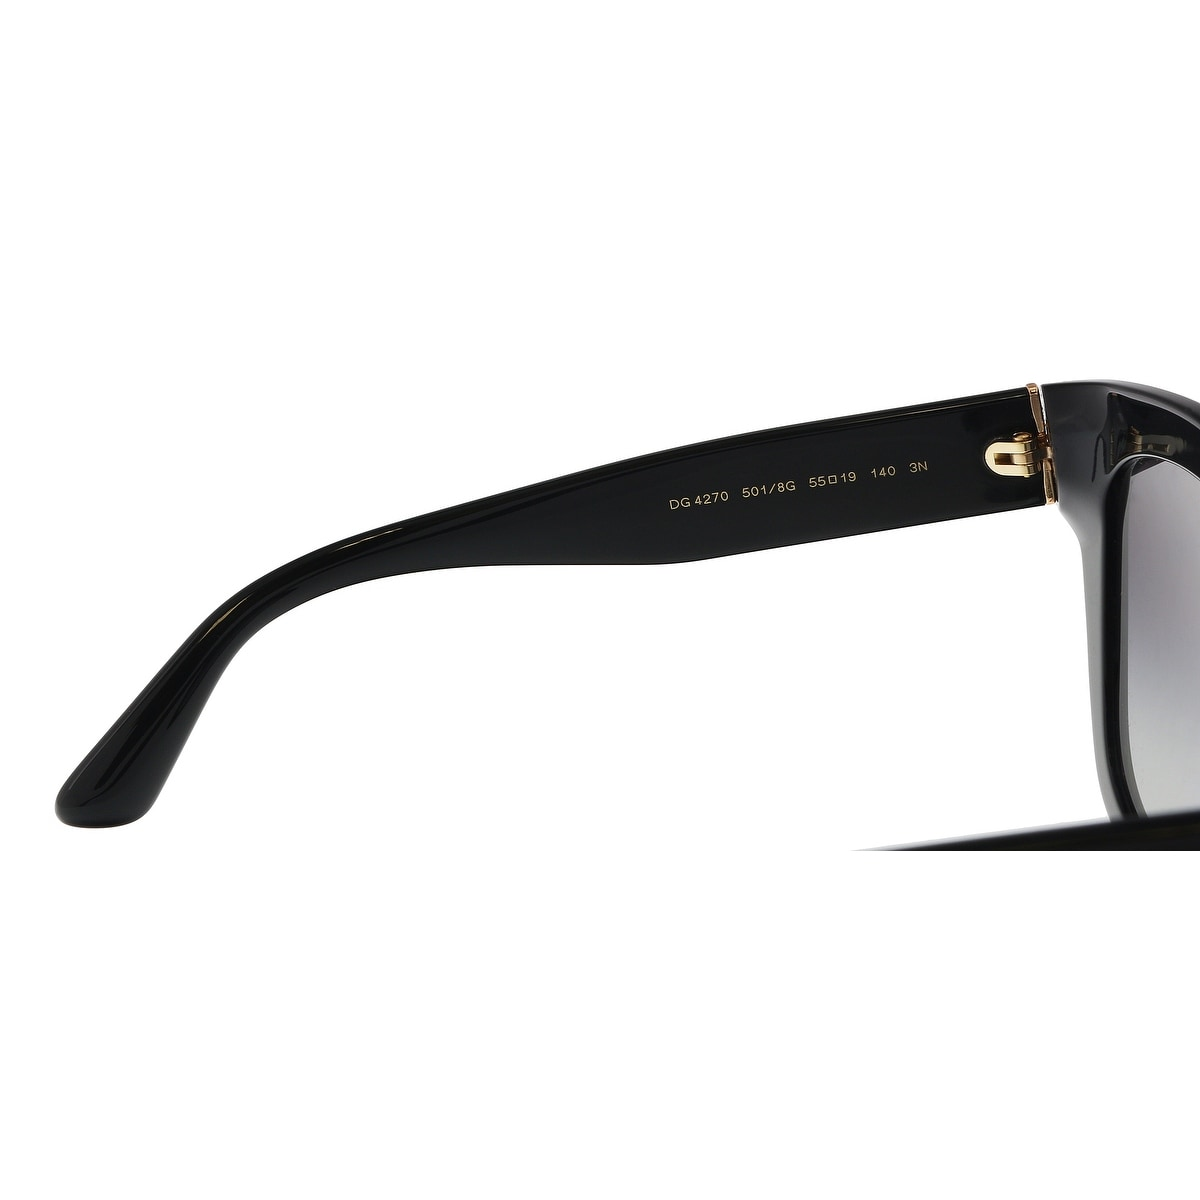 e76c234a398 Shop Dolce   Gabbana DG4270 501 8G Black Square Sunglasses - 55-19-140 -  Free Shipping Today - Overstock - 21157980